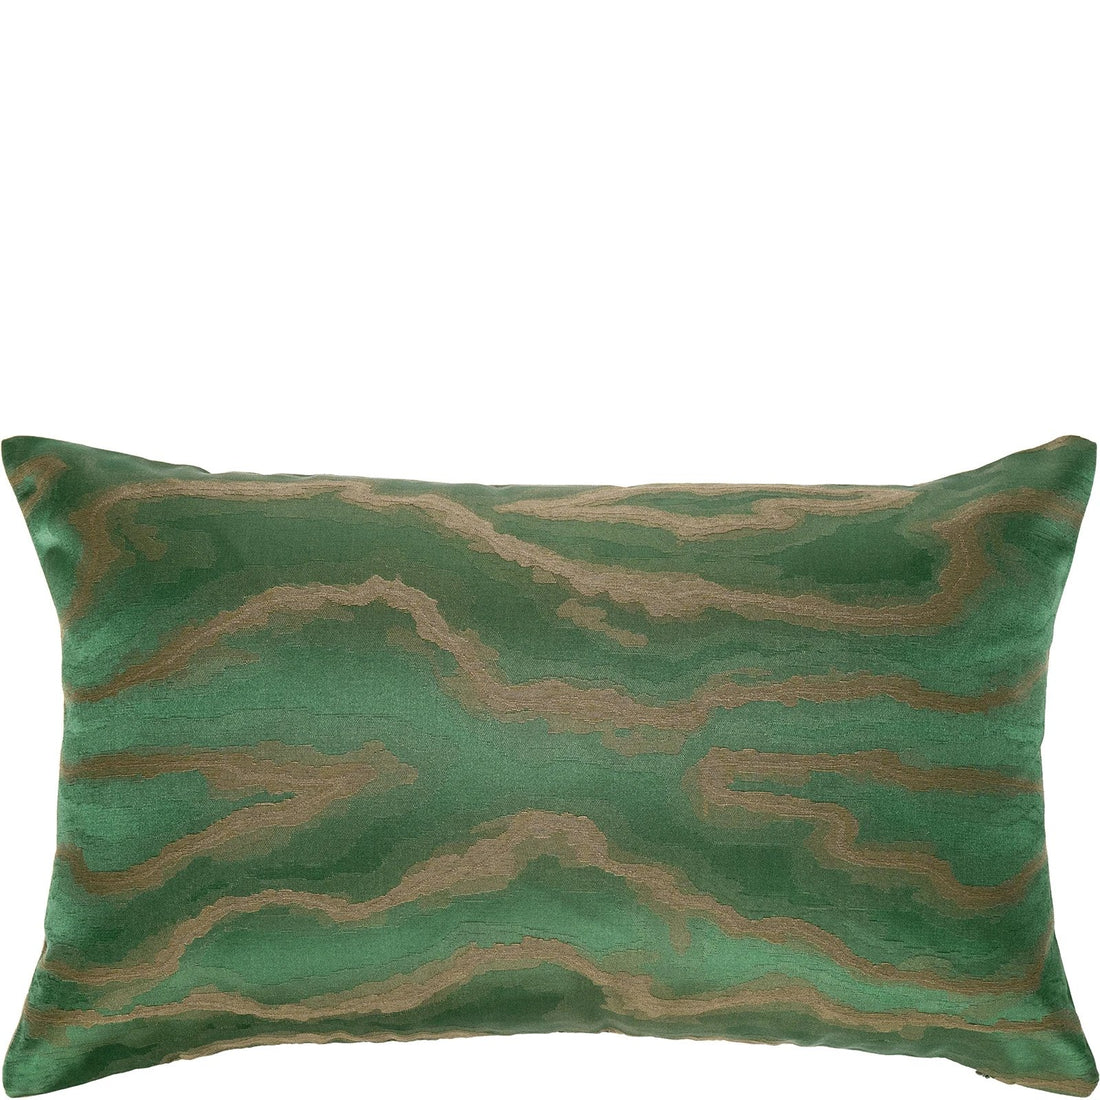 MOLLY RUSSEL Decorative Kidney Cushion